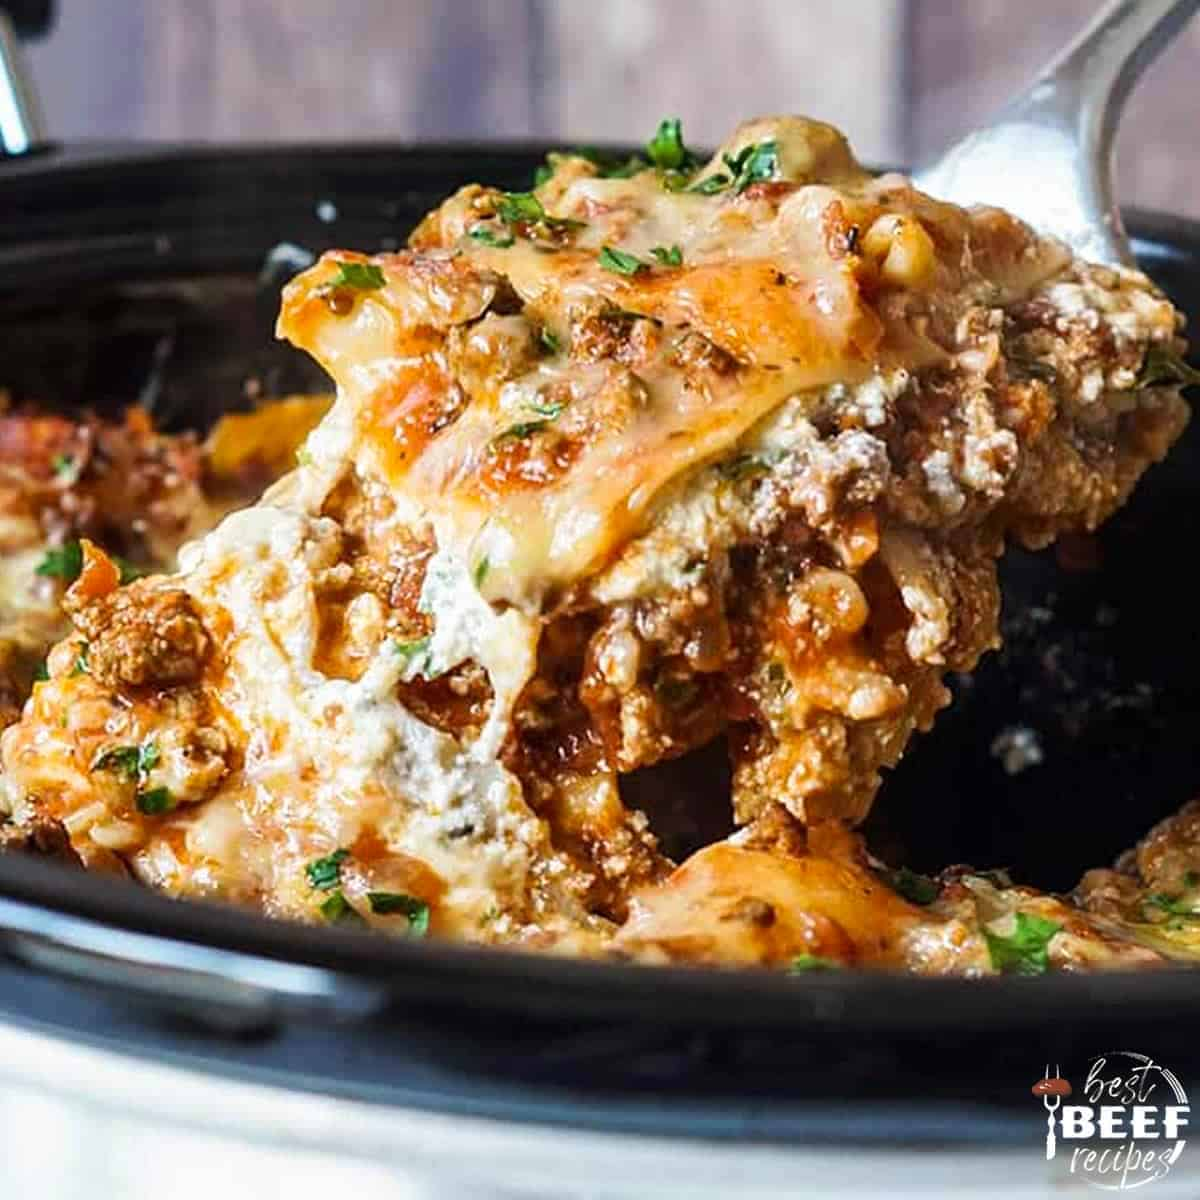 Slow cooker lasagna in the crock pot with a fork lifting some out